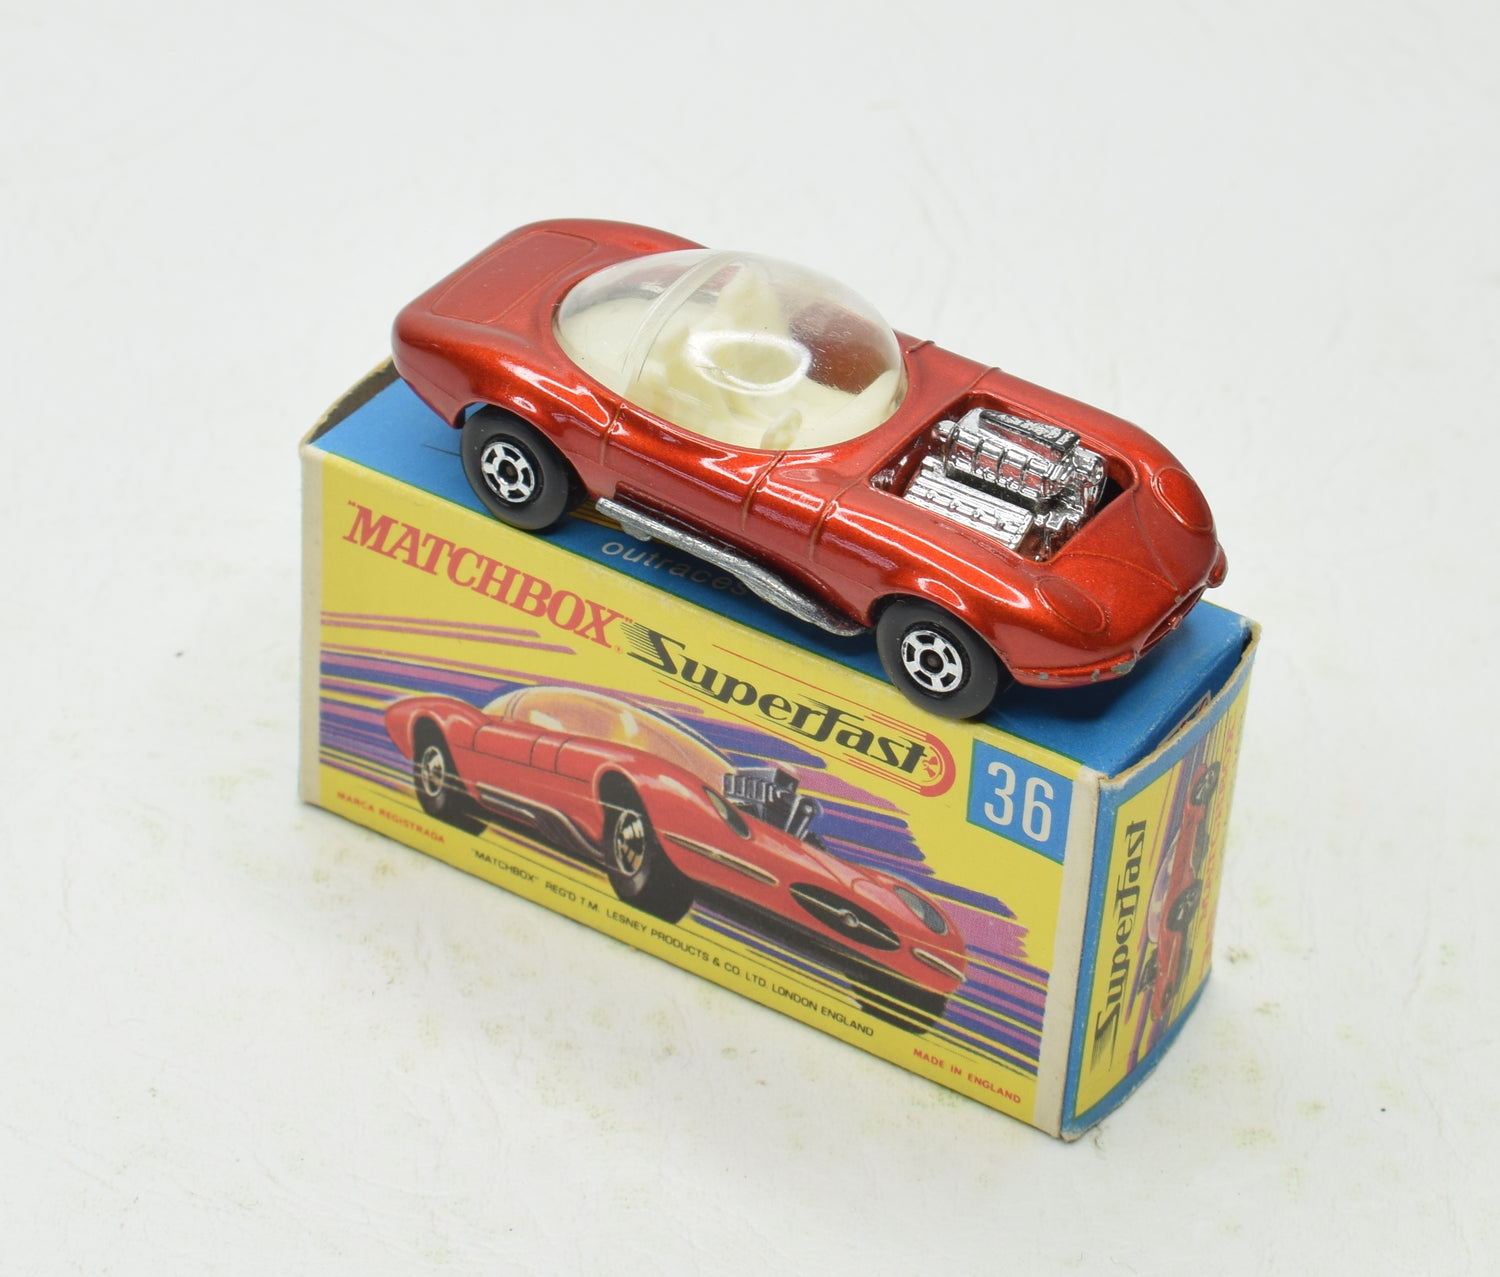 Matchbox Superfast 36 Dragular Virtually Mint/Boxed The 'Finley' Collection